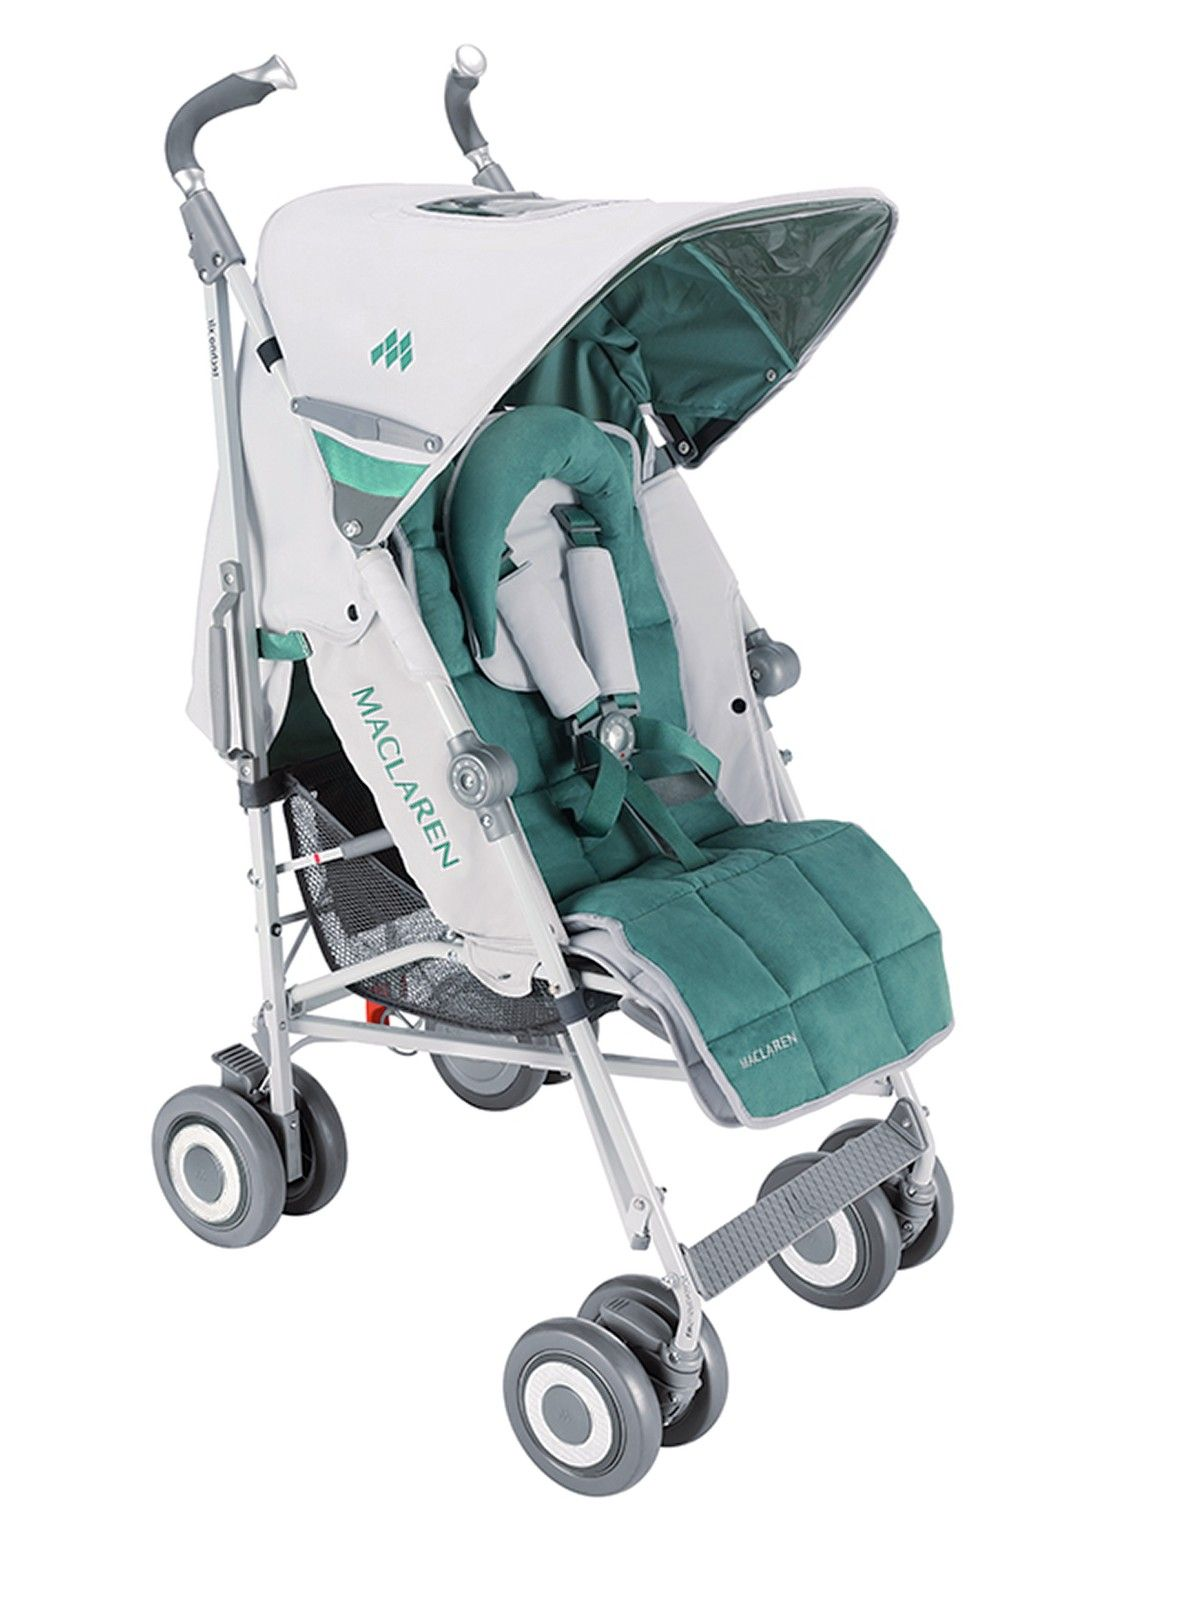 Silla Maclaren Xt 2016 Womens Mens And Kids Fashion Furniture Electricals More